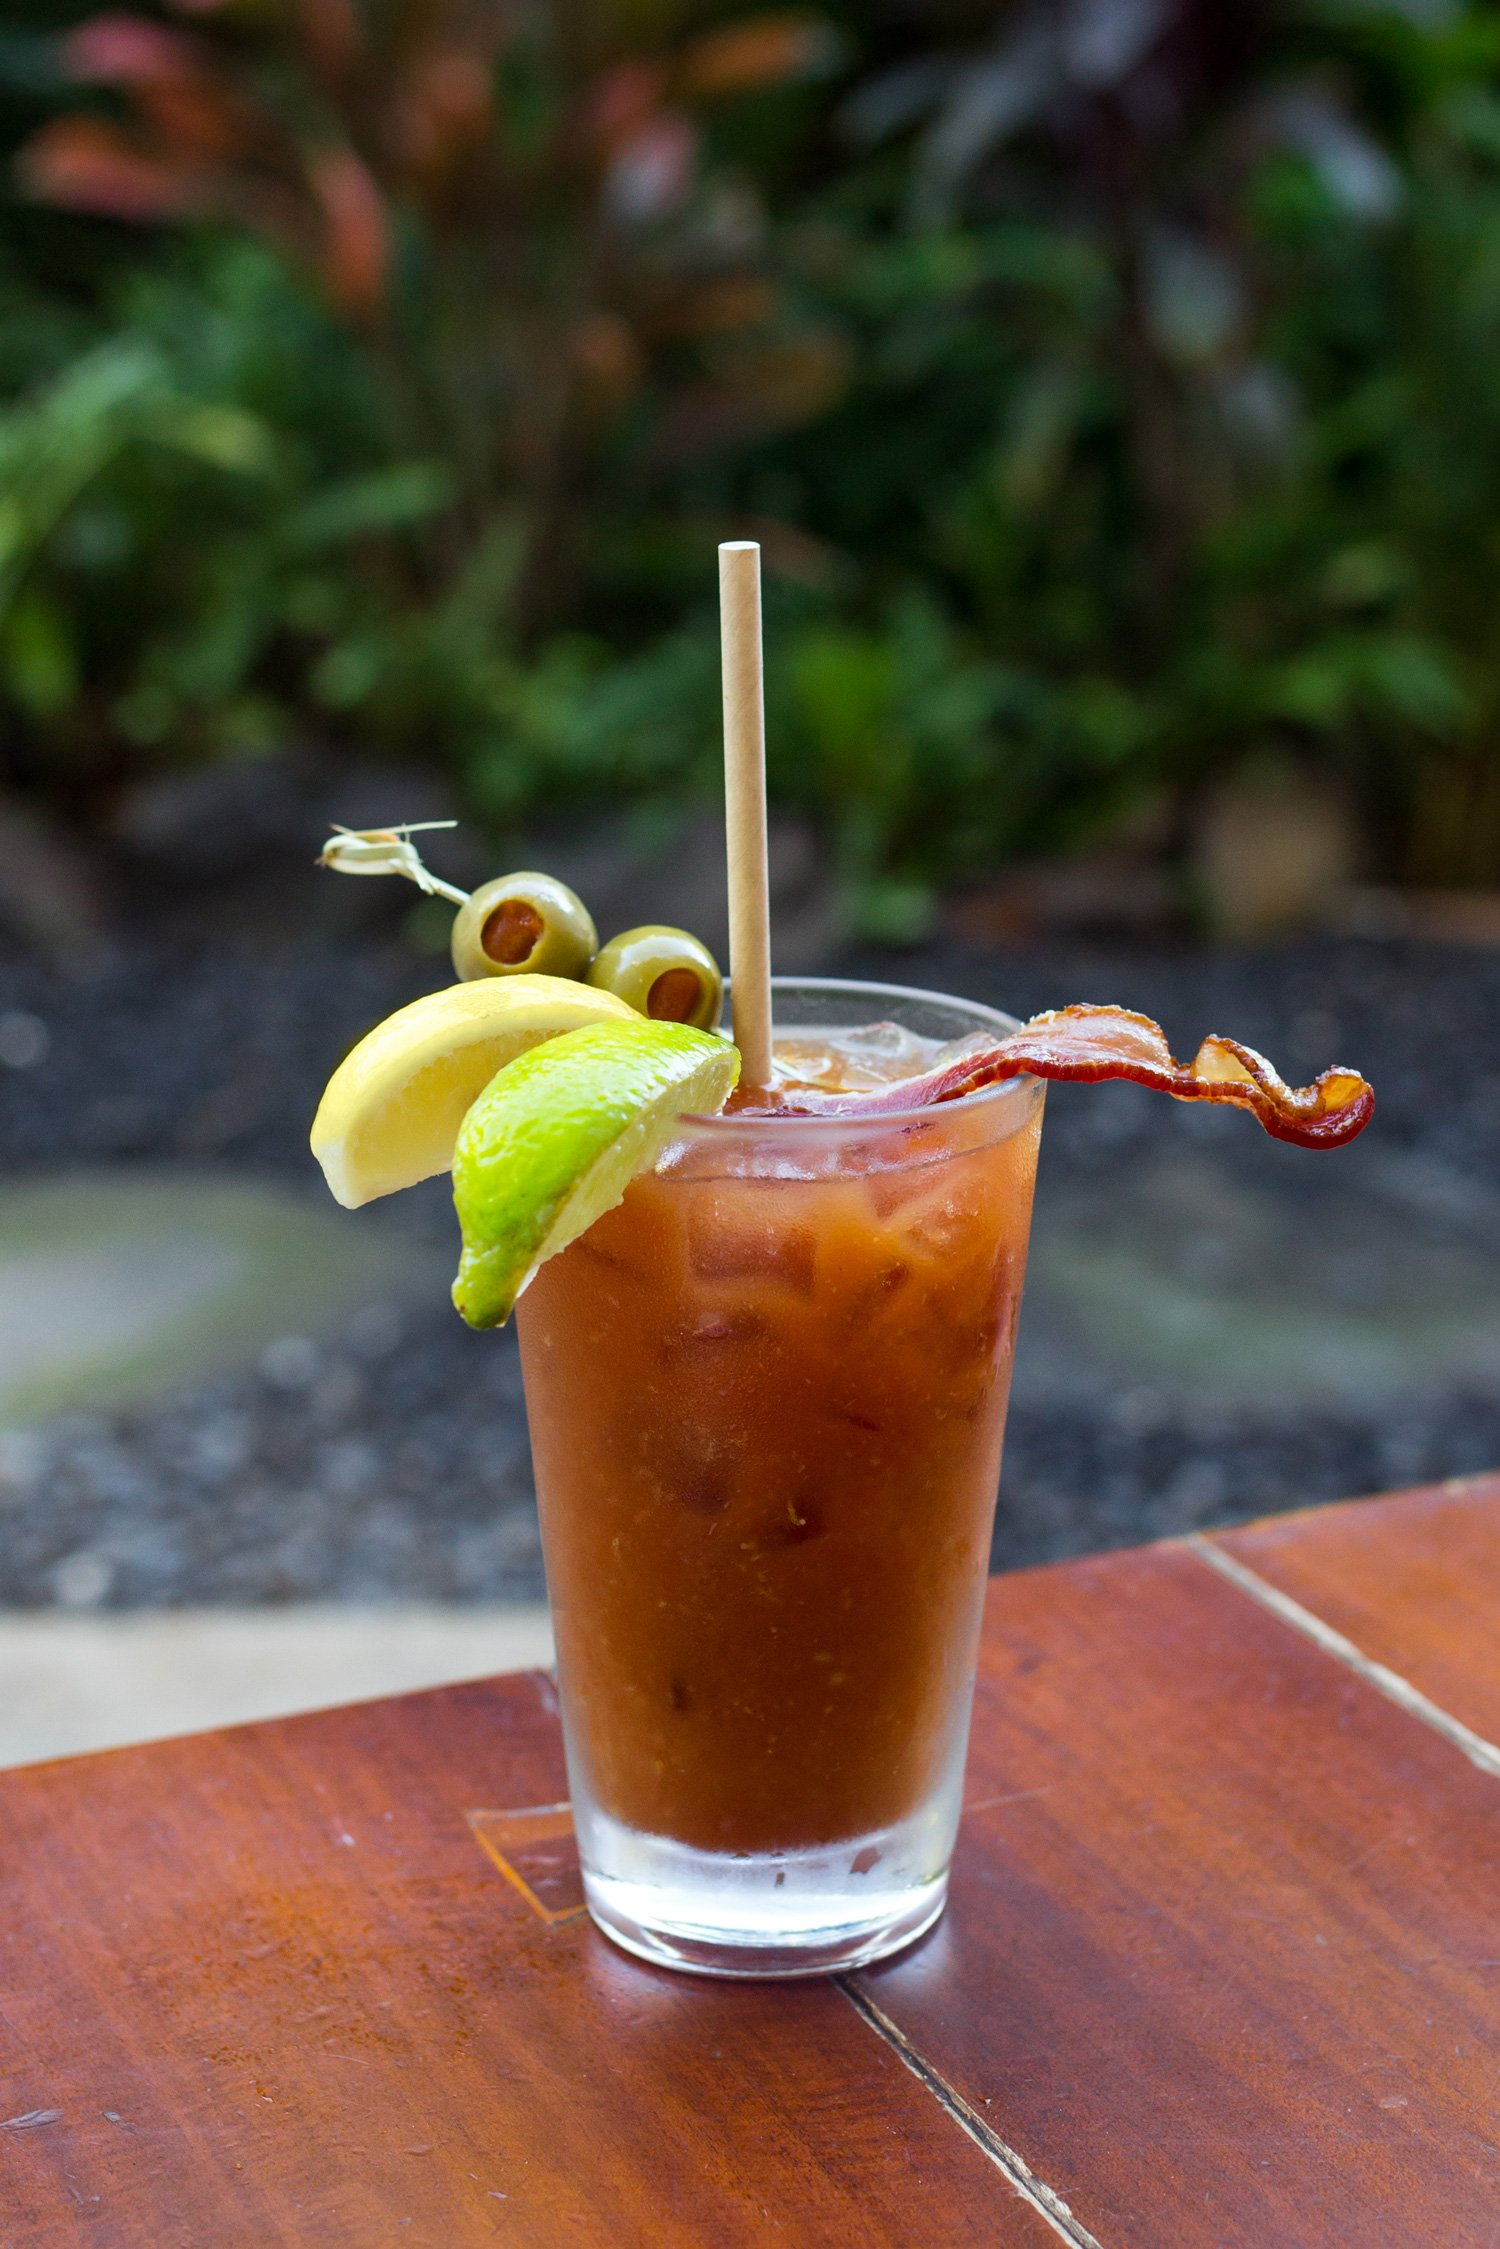 The Ami Bloody Mary